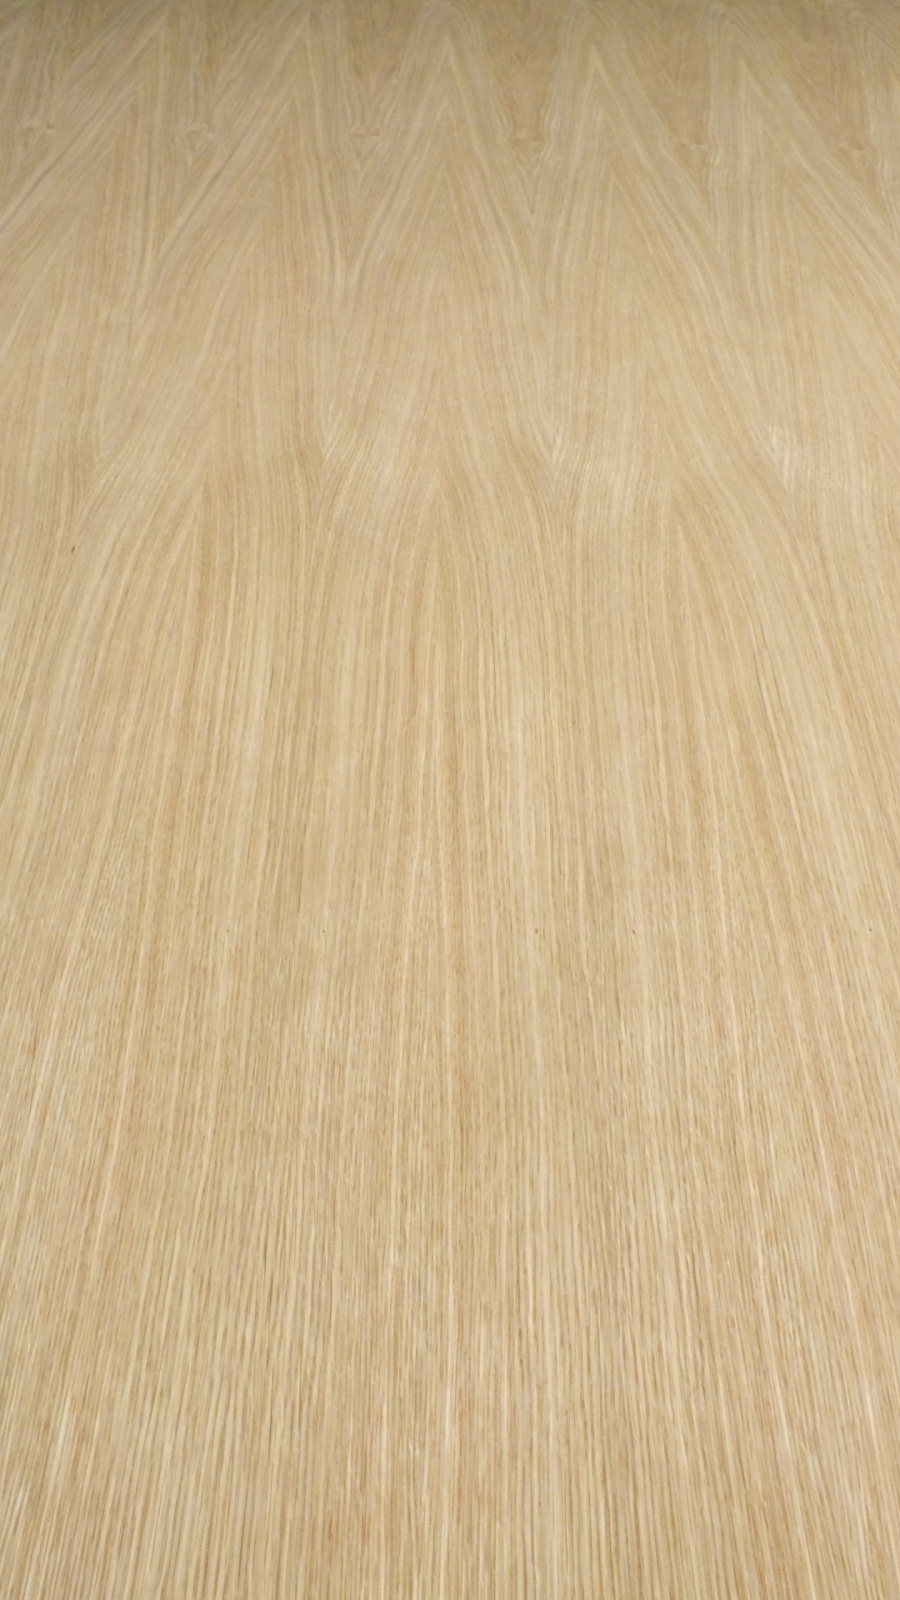 F/S AA White Oak